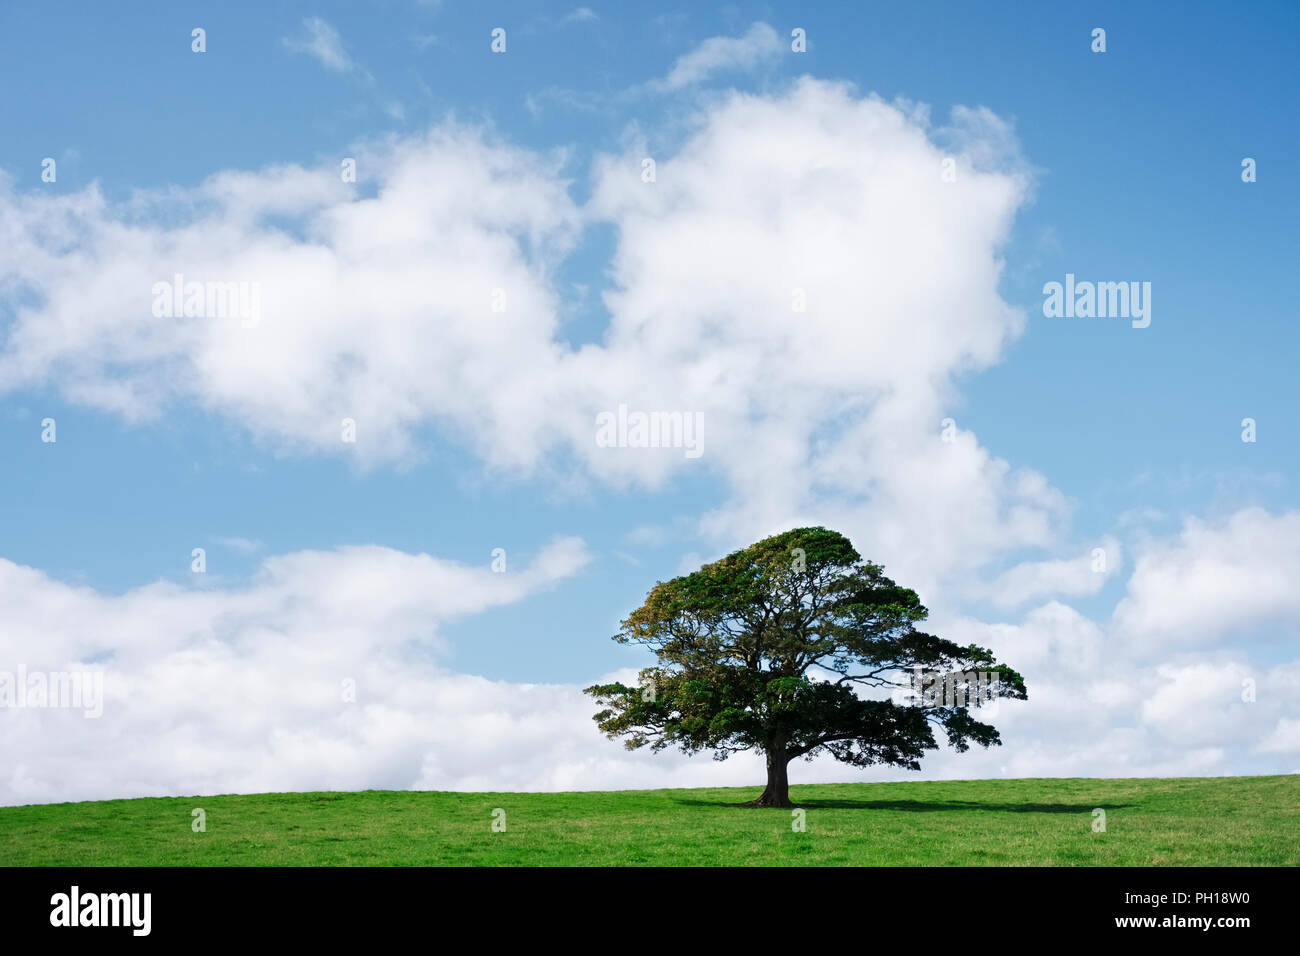 Single tree on green grass against blue sky and clouds - Stock Image